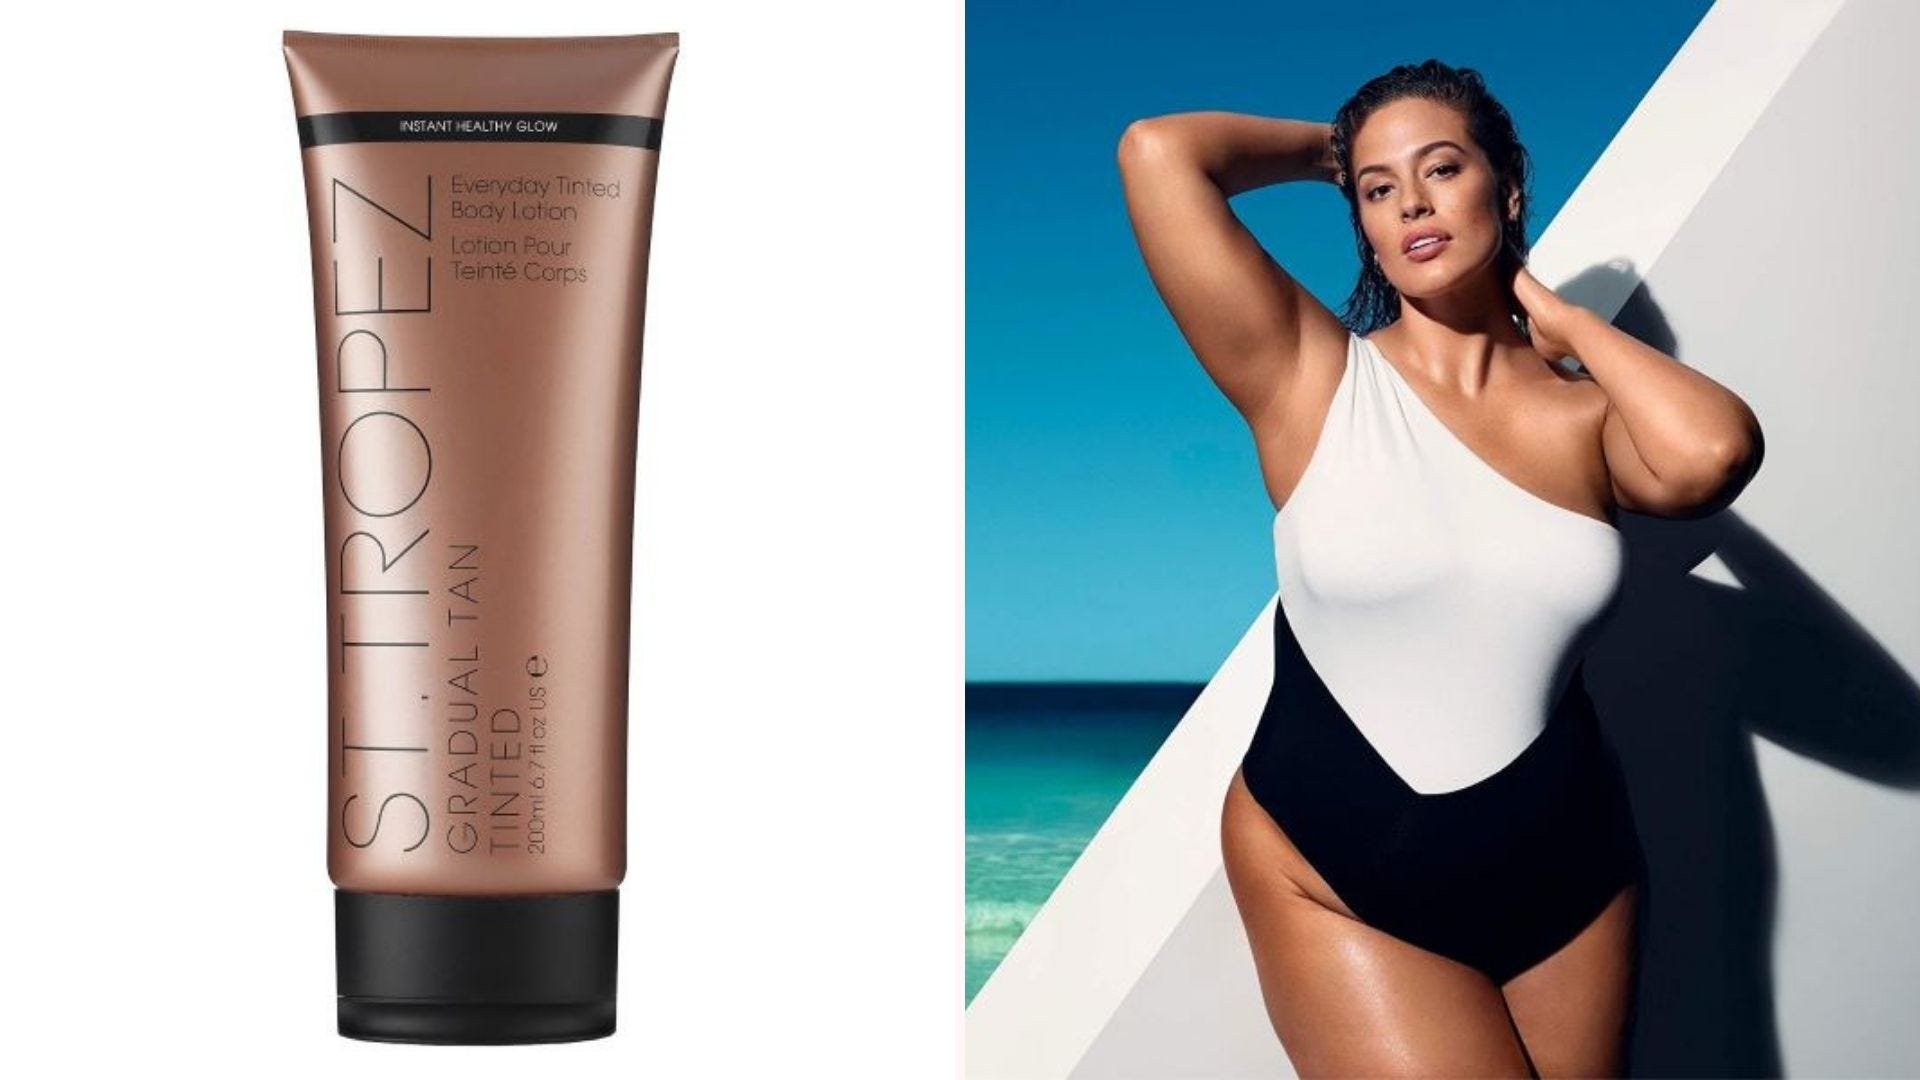 A large tube of St, Tropez Gradual Tan Body Lotion and a tan woman in a swimsuit at the beach.